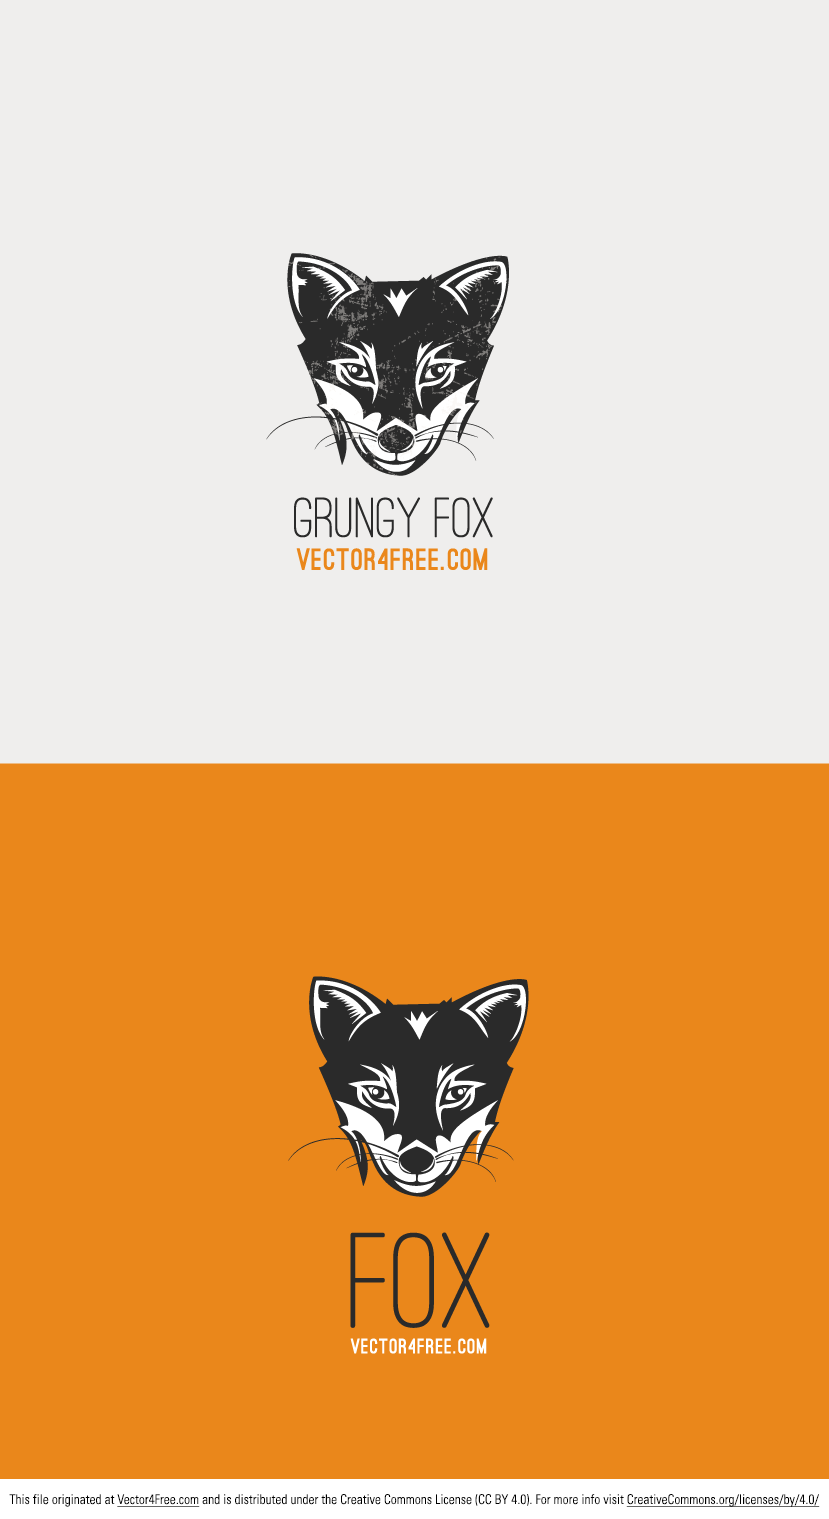 Vector Fox was crafted with care by the team of Vector4free.com in two versions: simple and grunge. You can use it as a logo.  We create and share vector graphics that you can freely use. If you find Vector Fox Graphic useful let us know - we highly appreciate likes on Facebook, your tweets, you may also link to our site on your website. Download Vector Fox and enjoy!